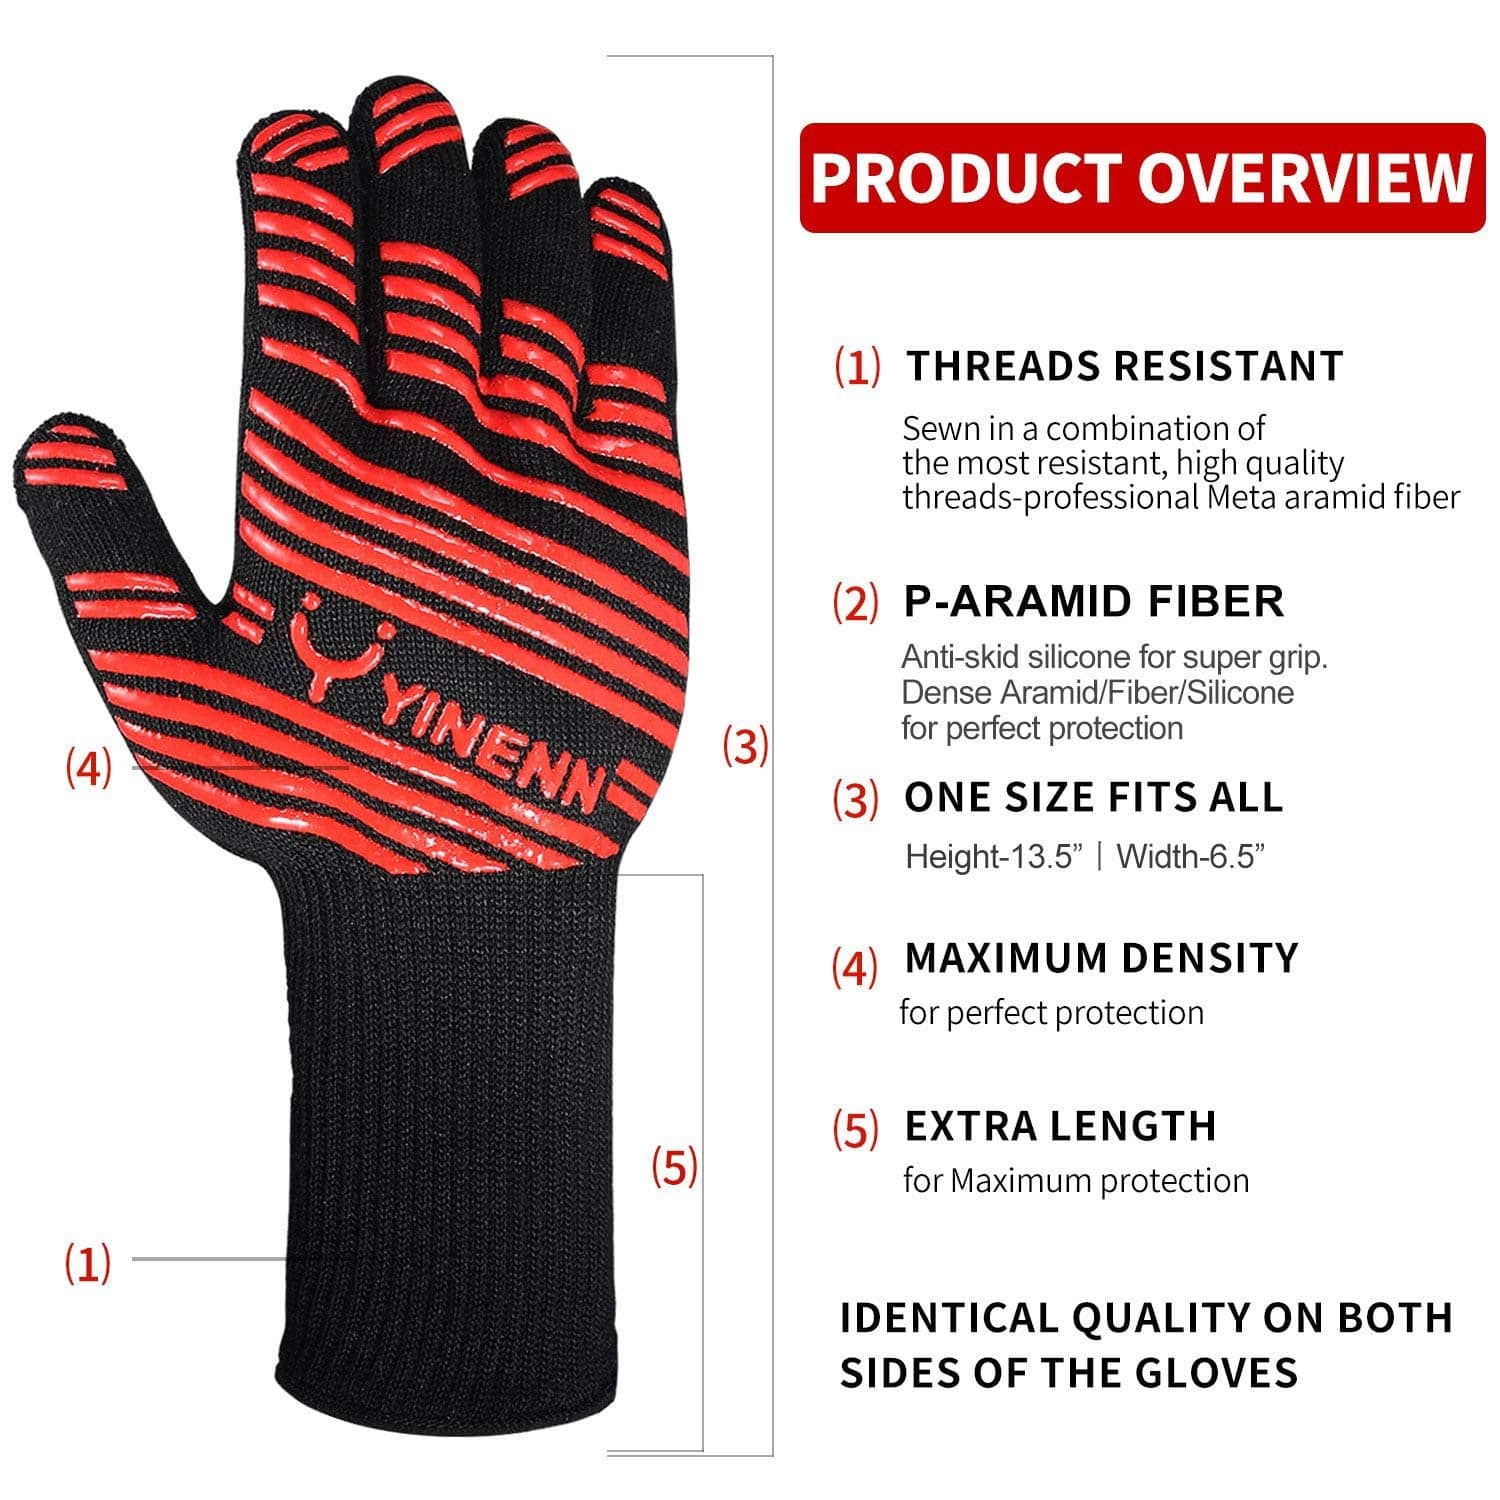 BBQ Grill Gloves w/ Heat Resistance, Insulated Silicone f$5.49AC Amazon